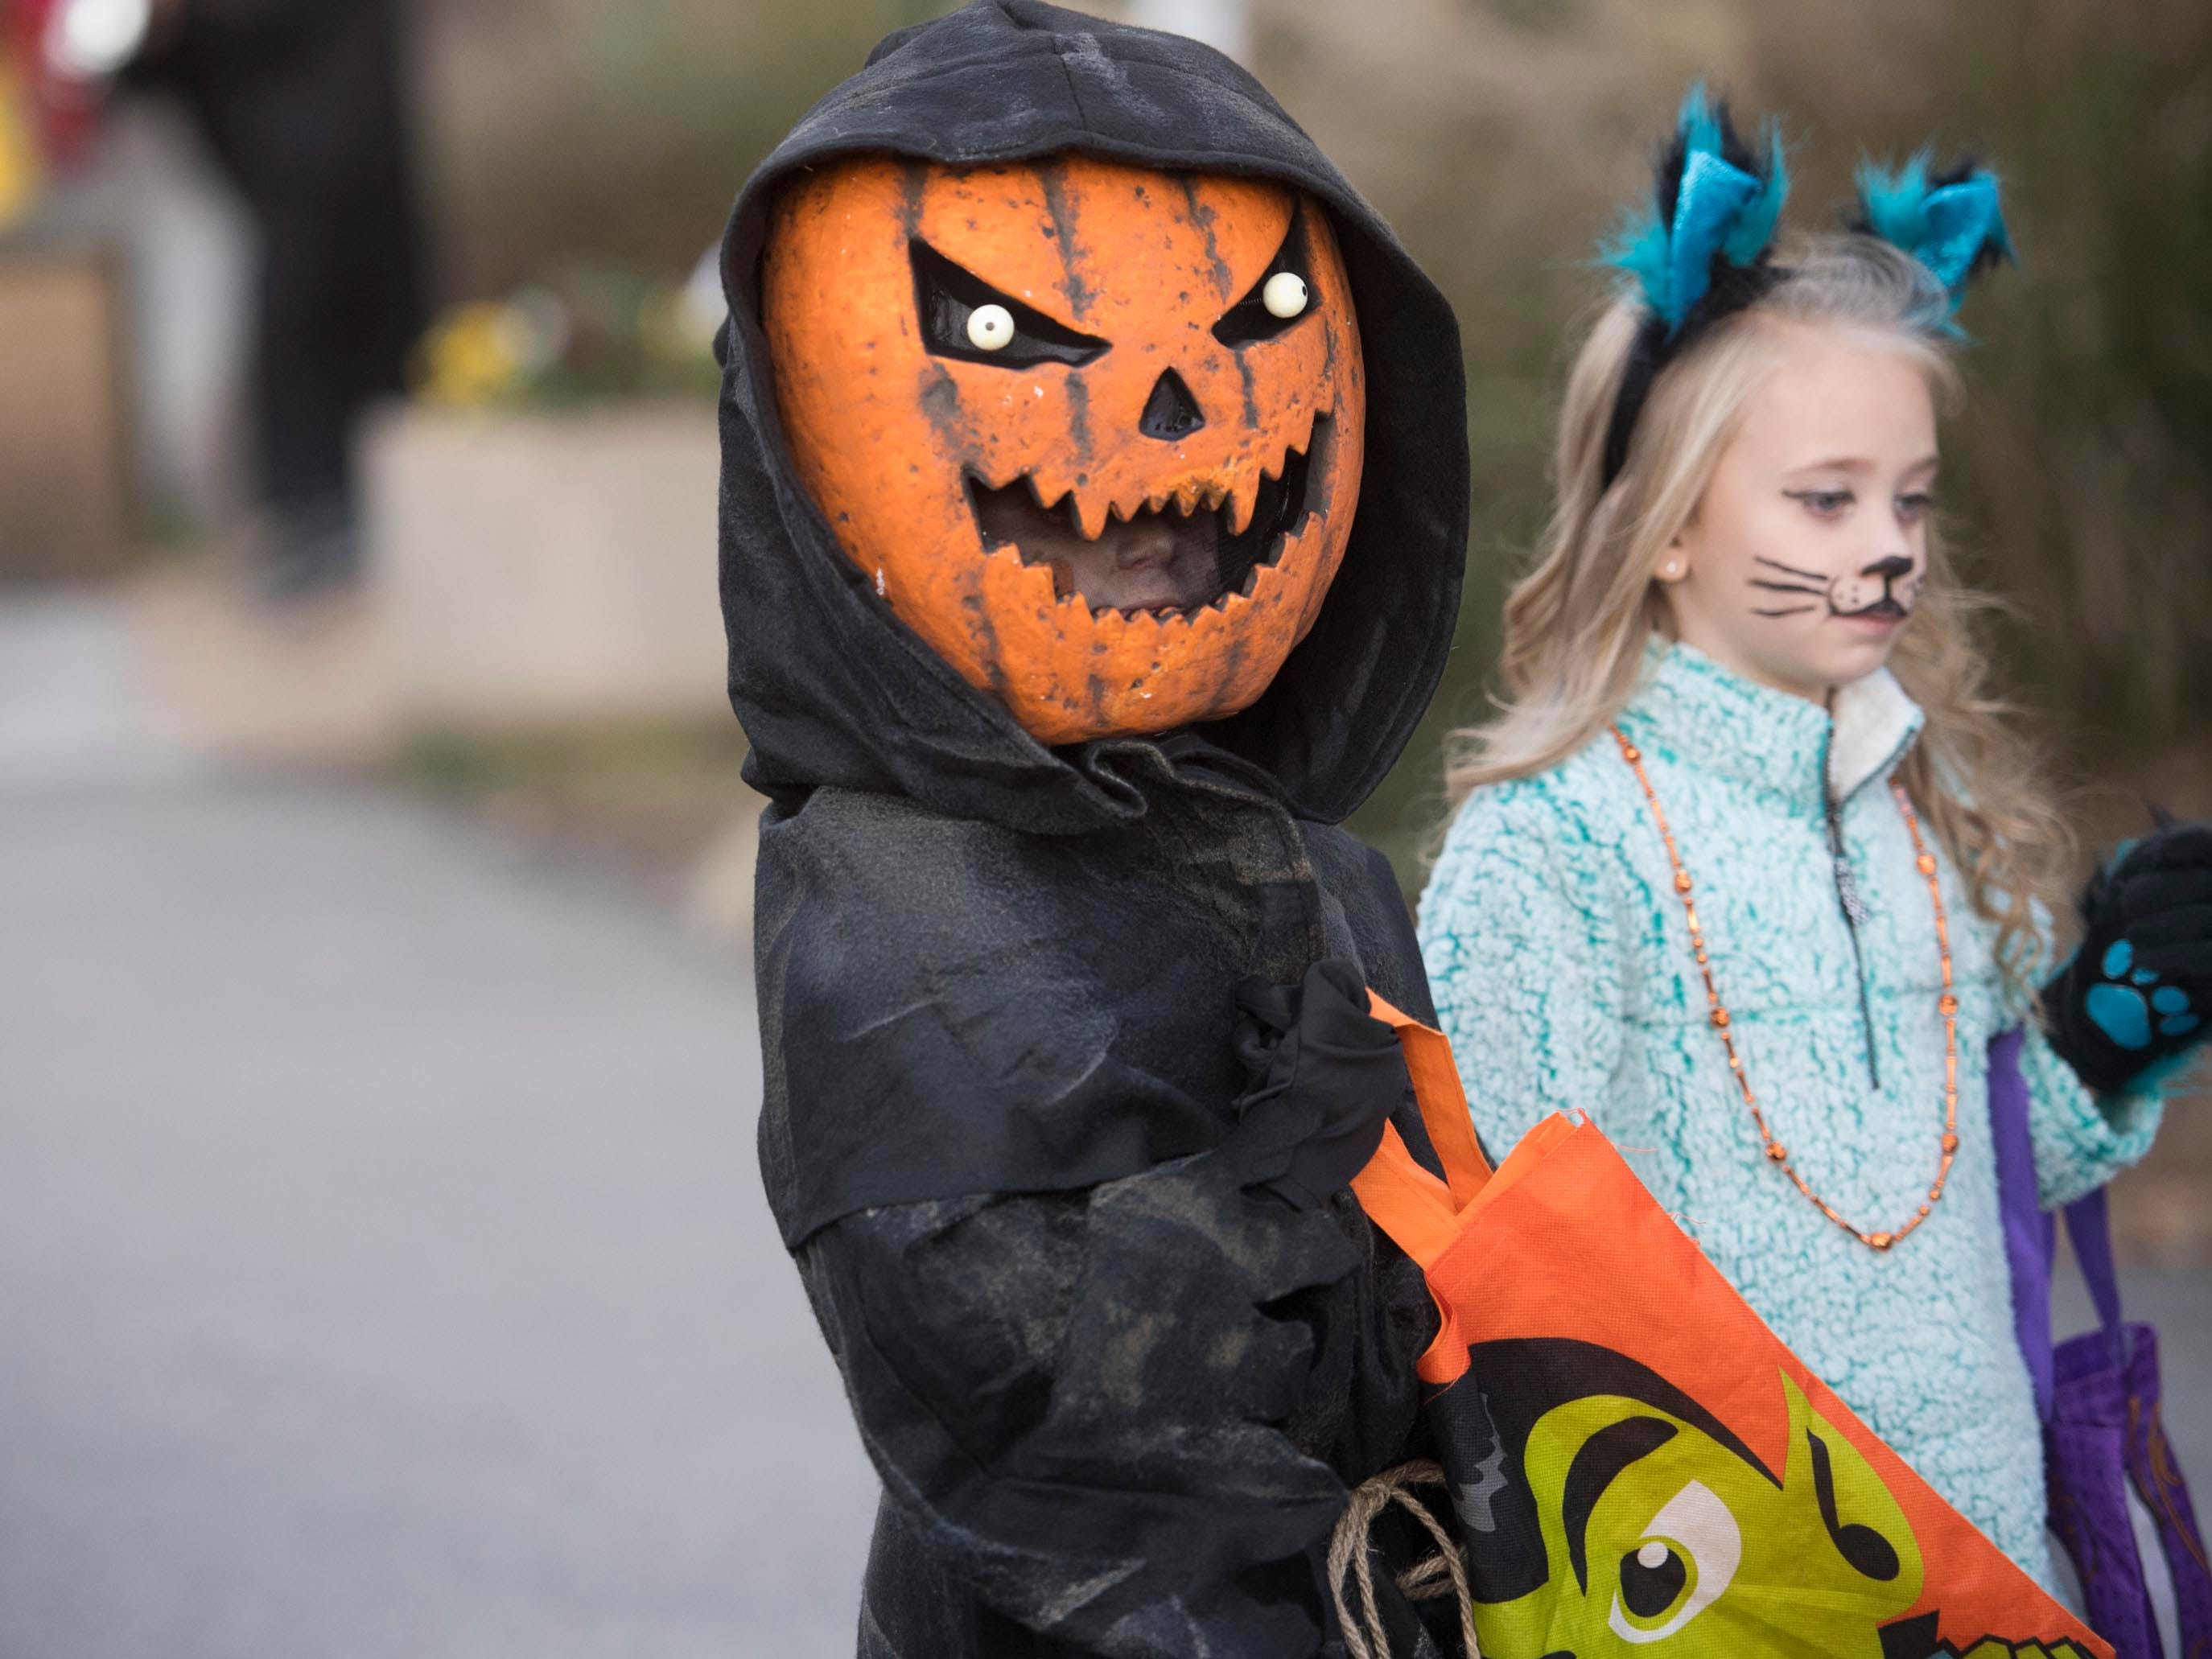 Costumed trick-or-treaters at Zoo Knoxville's Boo! at the Zoo on Saturday, October 20, 2018.